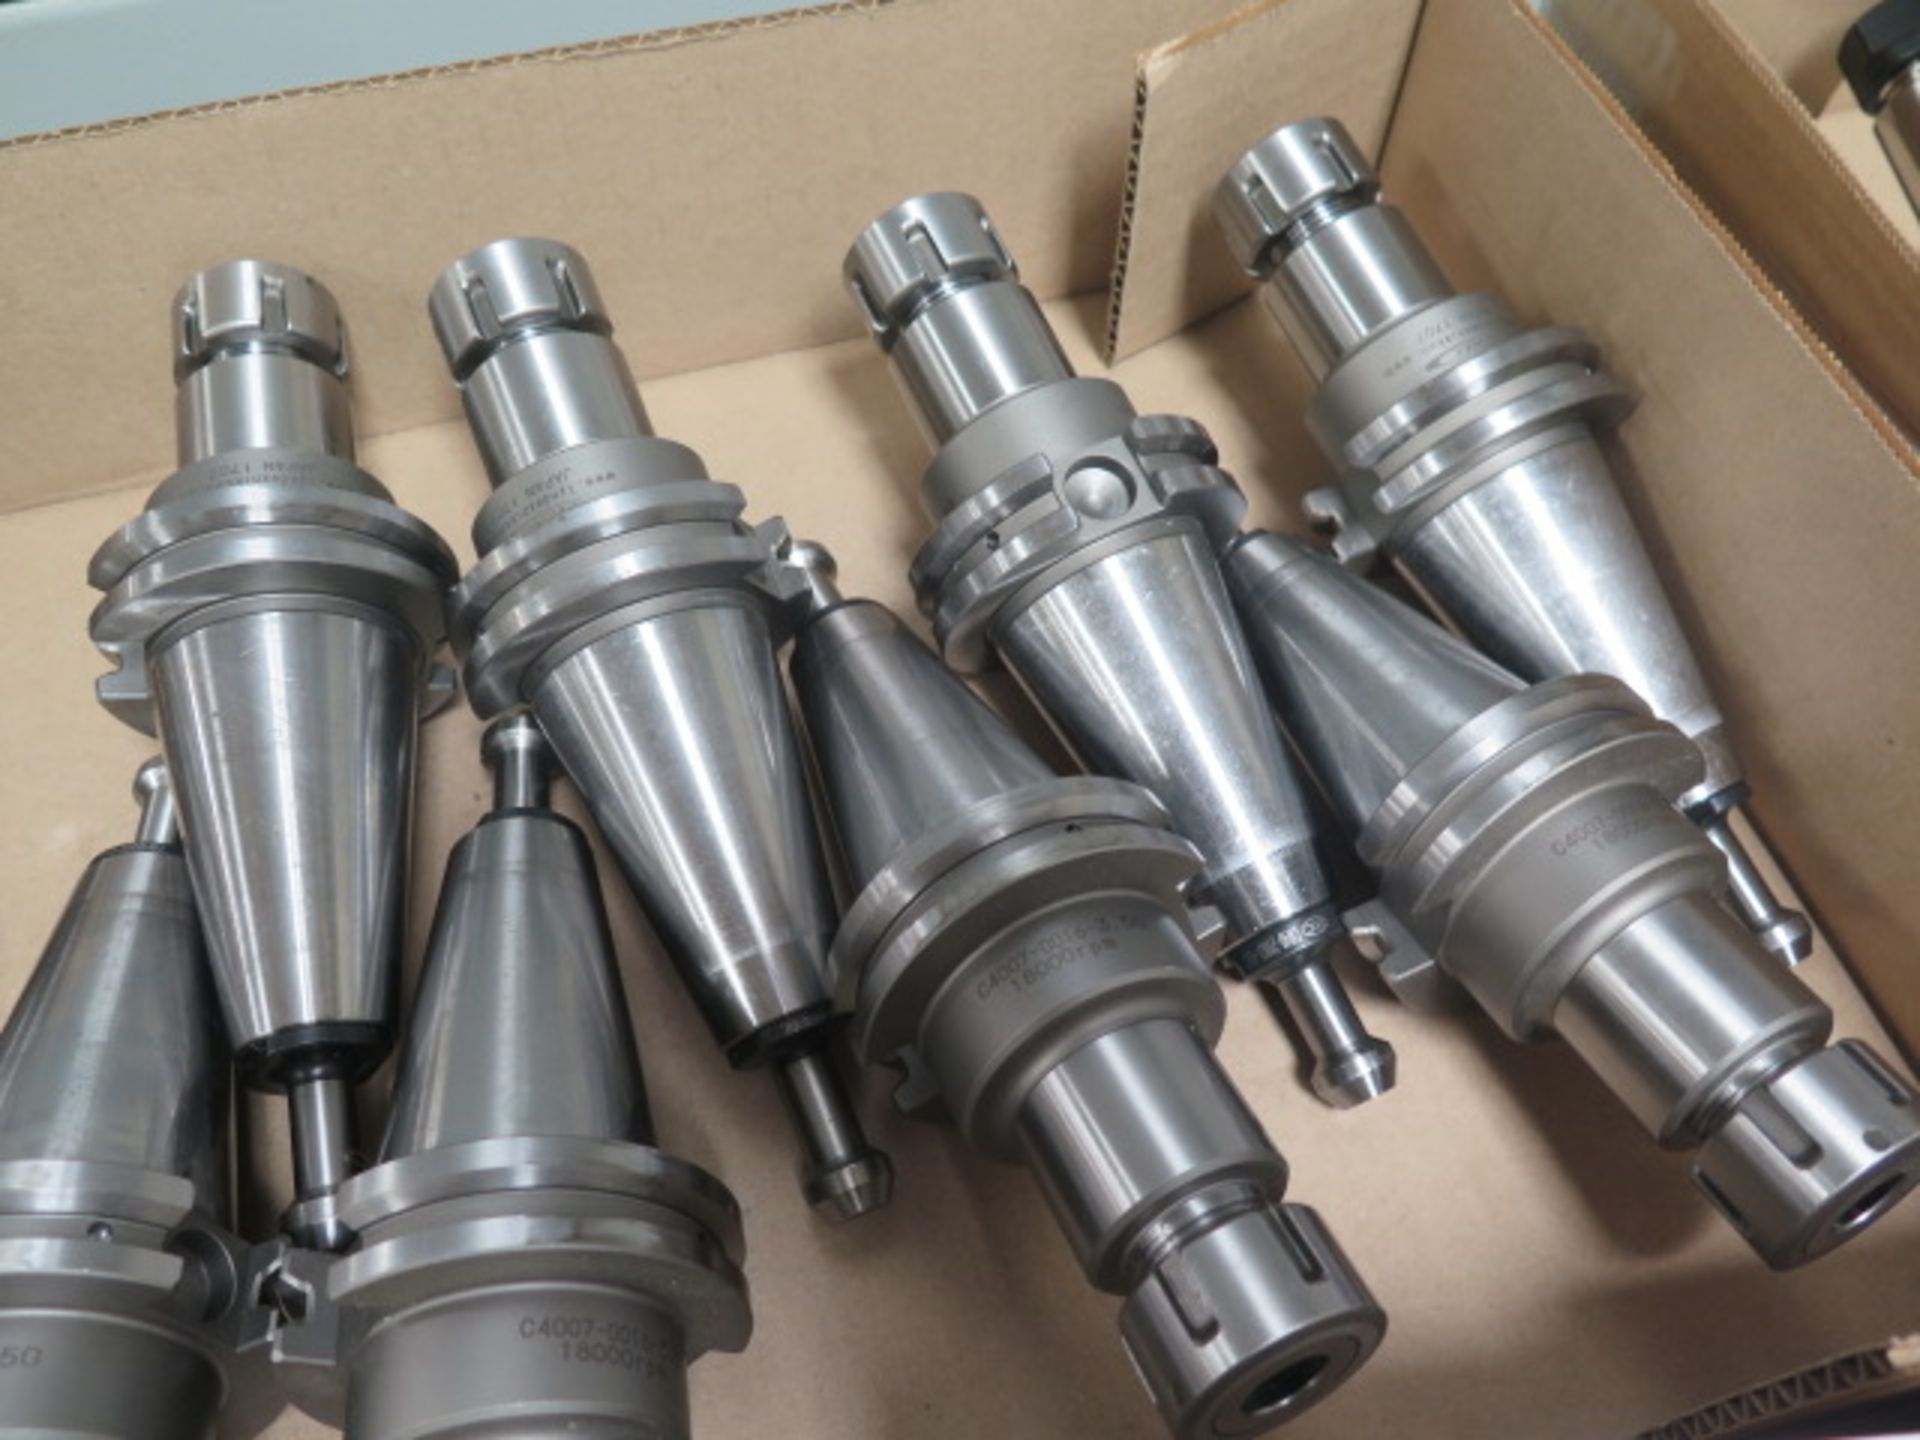 CAT-40 Taper 18,000 RPM Balanced ER20 Collet Chucks (10) (SOLD AS-IS - NO WARRANTY) - Image 4 of 5